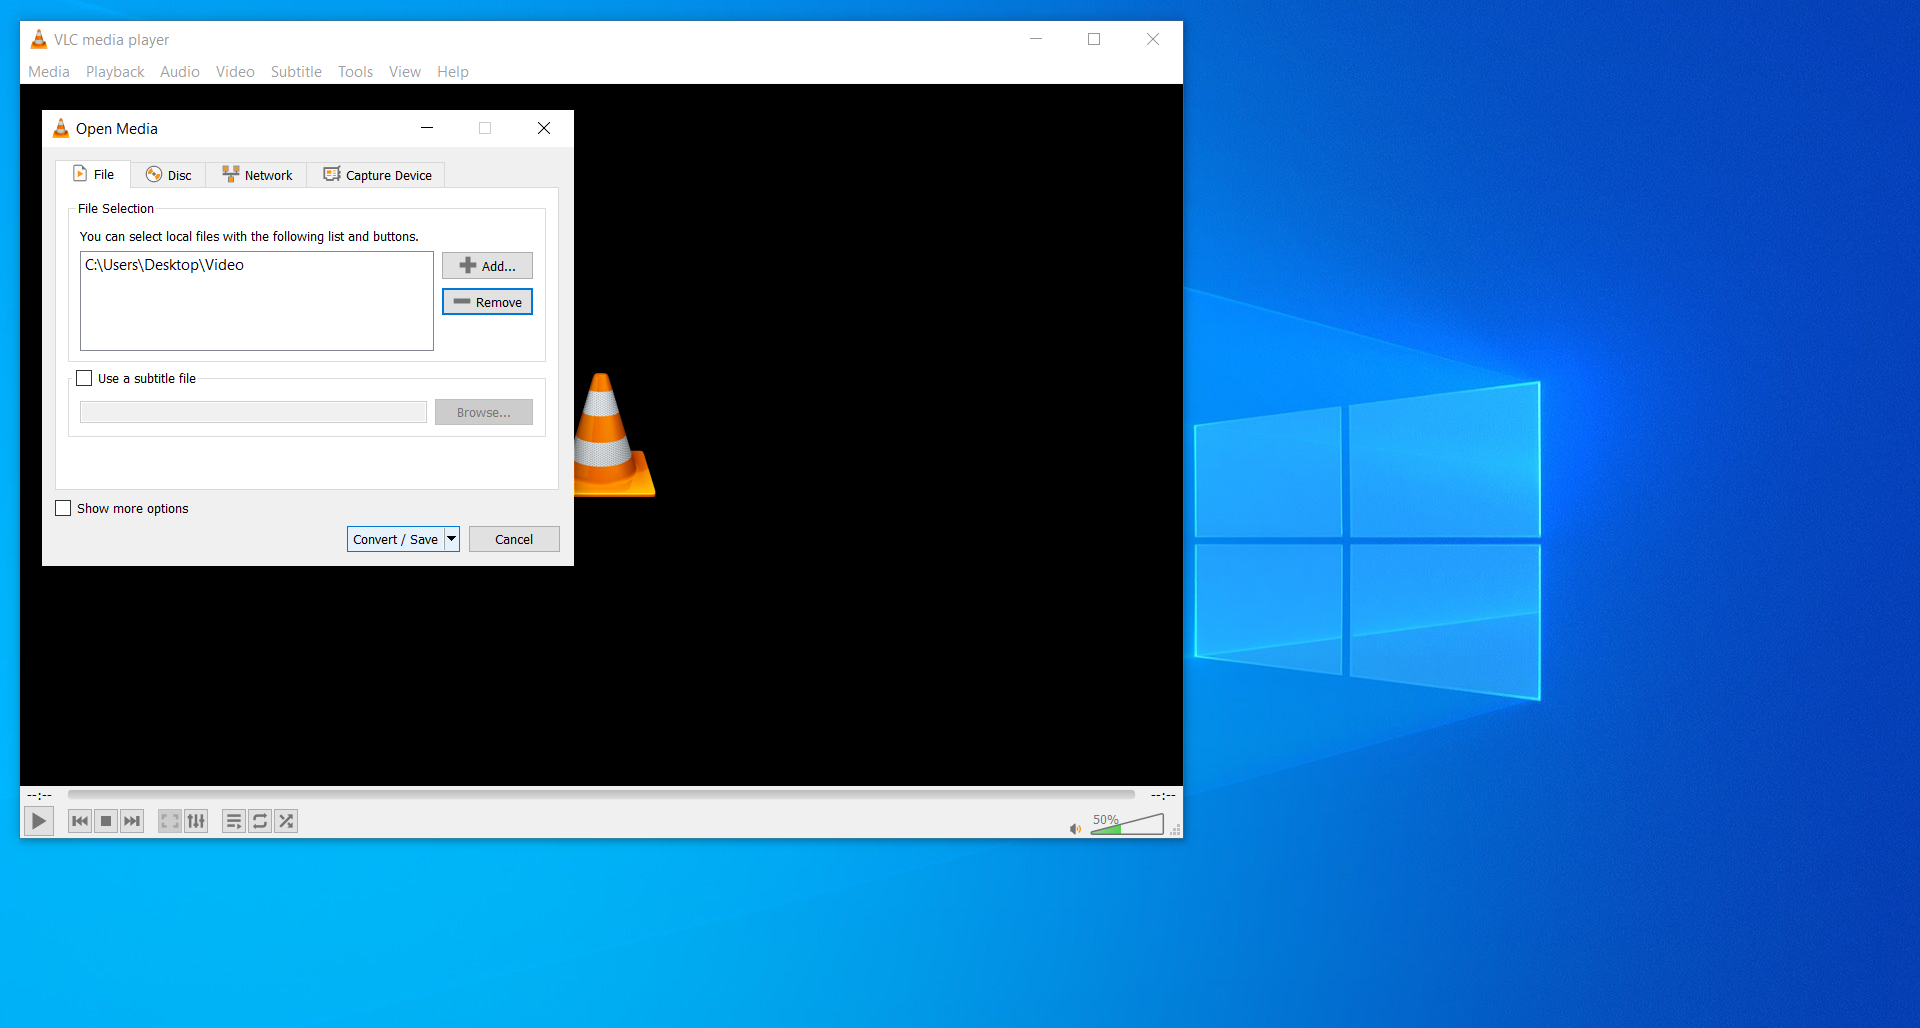 How to reduce video file size to send via e-mail using VLC Media Player?